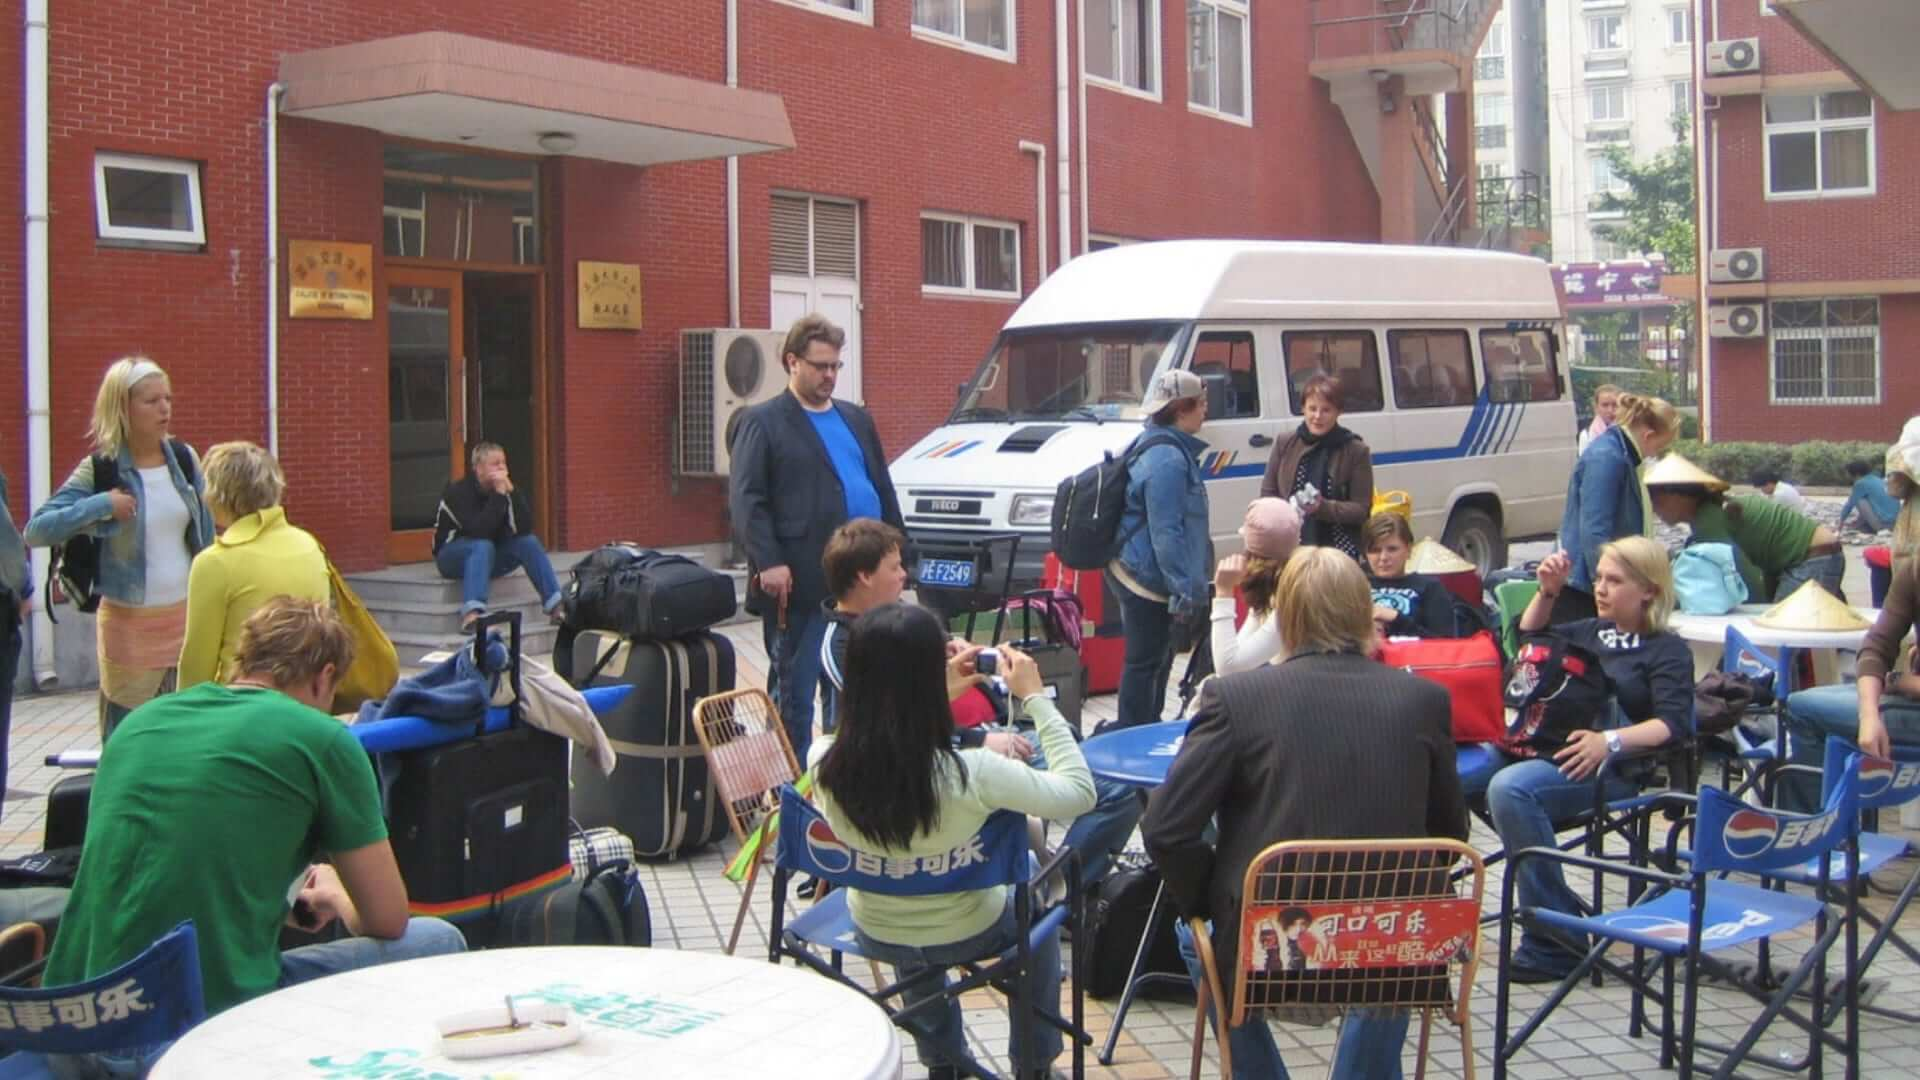 A group of people is sitting outside on a terrace with suitcases waiting in Shanghai.